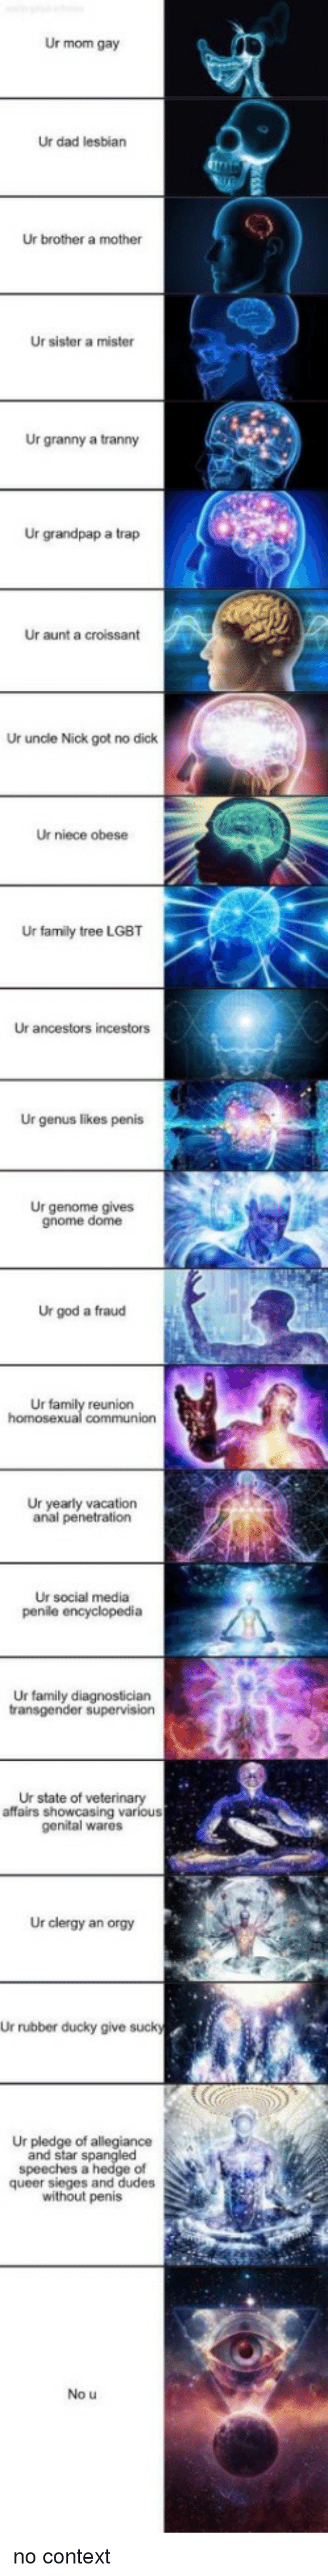 genome: Ur mom gay  Ur dad lesbian  Ur brother a mother  Ur sister a mister  Ur granny a tranny  Ur grandpap a trap  Ur aunt a croissant  Ur uncle Nick got no dick  Ur niece obese  Ur family tree LGBT  Ur ancestors incestors  Ur genus likes penis  Ur genome gives  gnome dome  Ur god a fraud  Ur  reunion  Ur yearly vacation  anal penetration  Ur social media  Ur family diagnostician  Ur state of veterinary  affairs showcasing various  genital wares  Ur clergy an orgy  Ur rubber ducky give suck  Ur pledge of allegiance  and star spangled  speeches a hedge of  queer sieges and dudes  without penis  No u no context